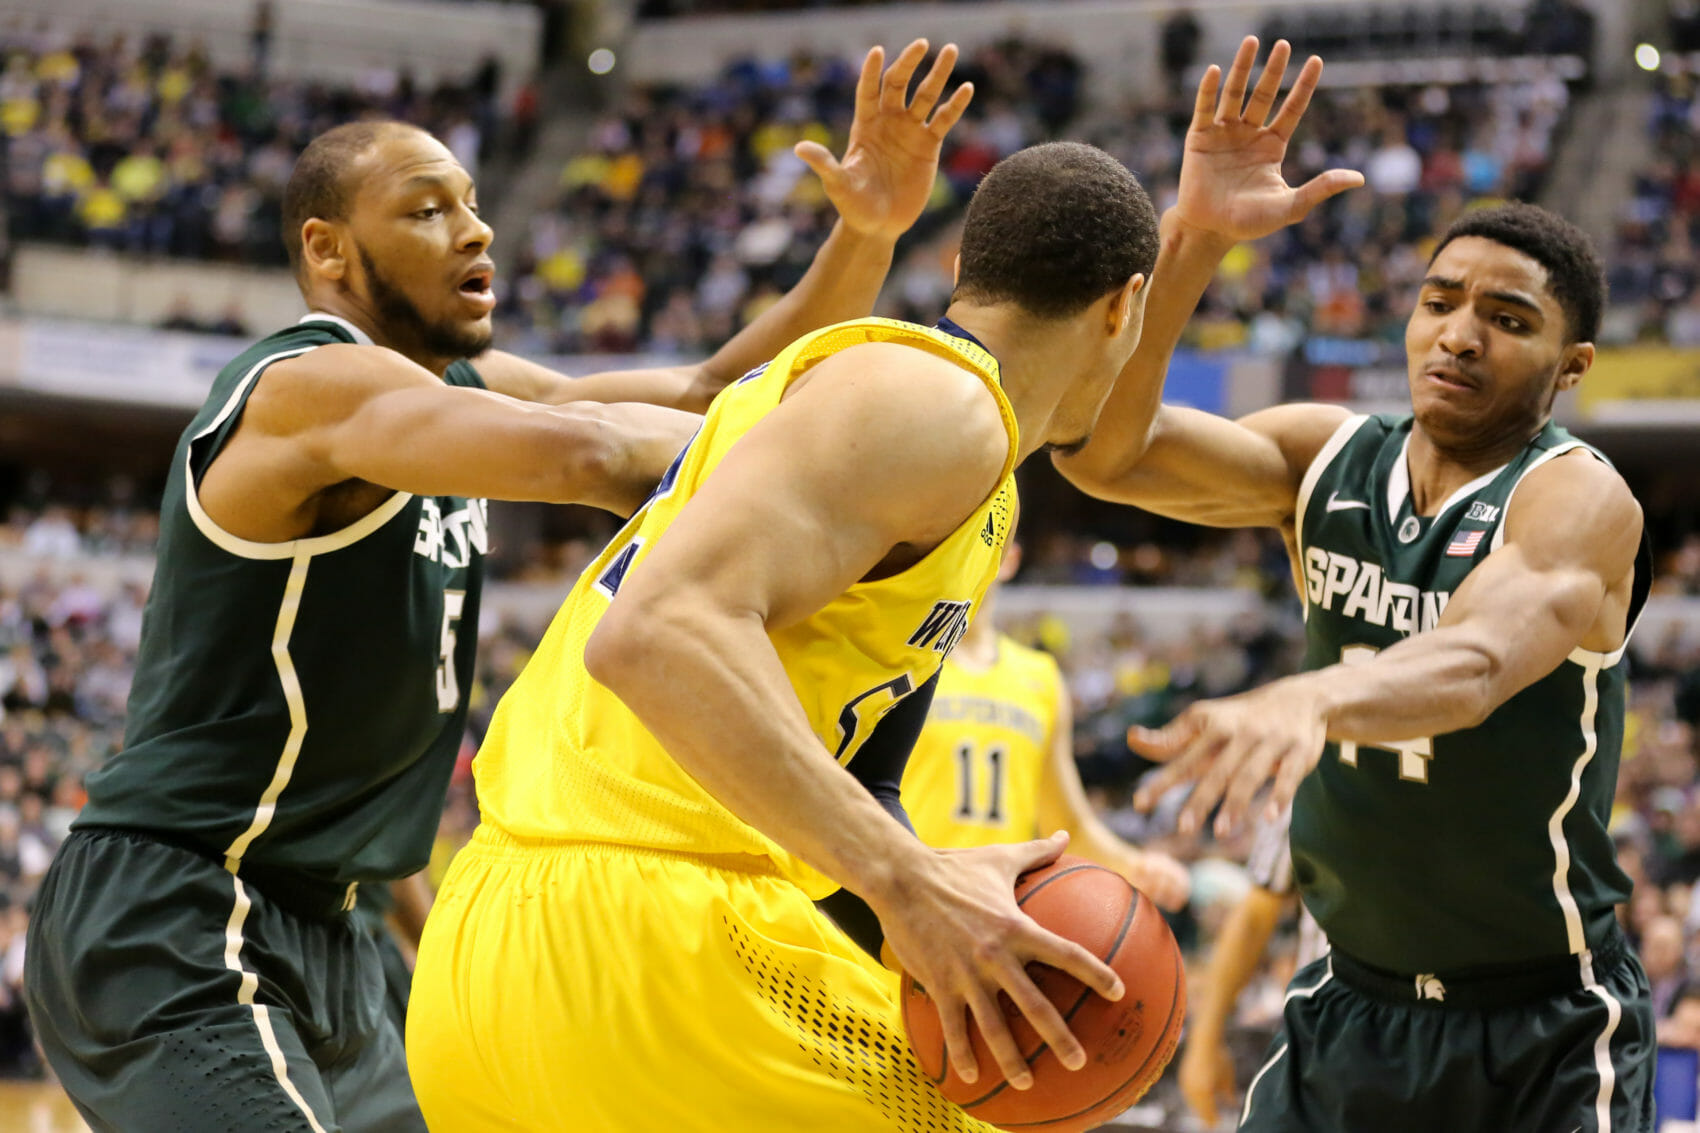 Michigan State 69, Michigan 55-16